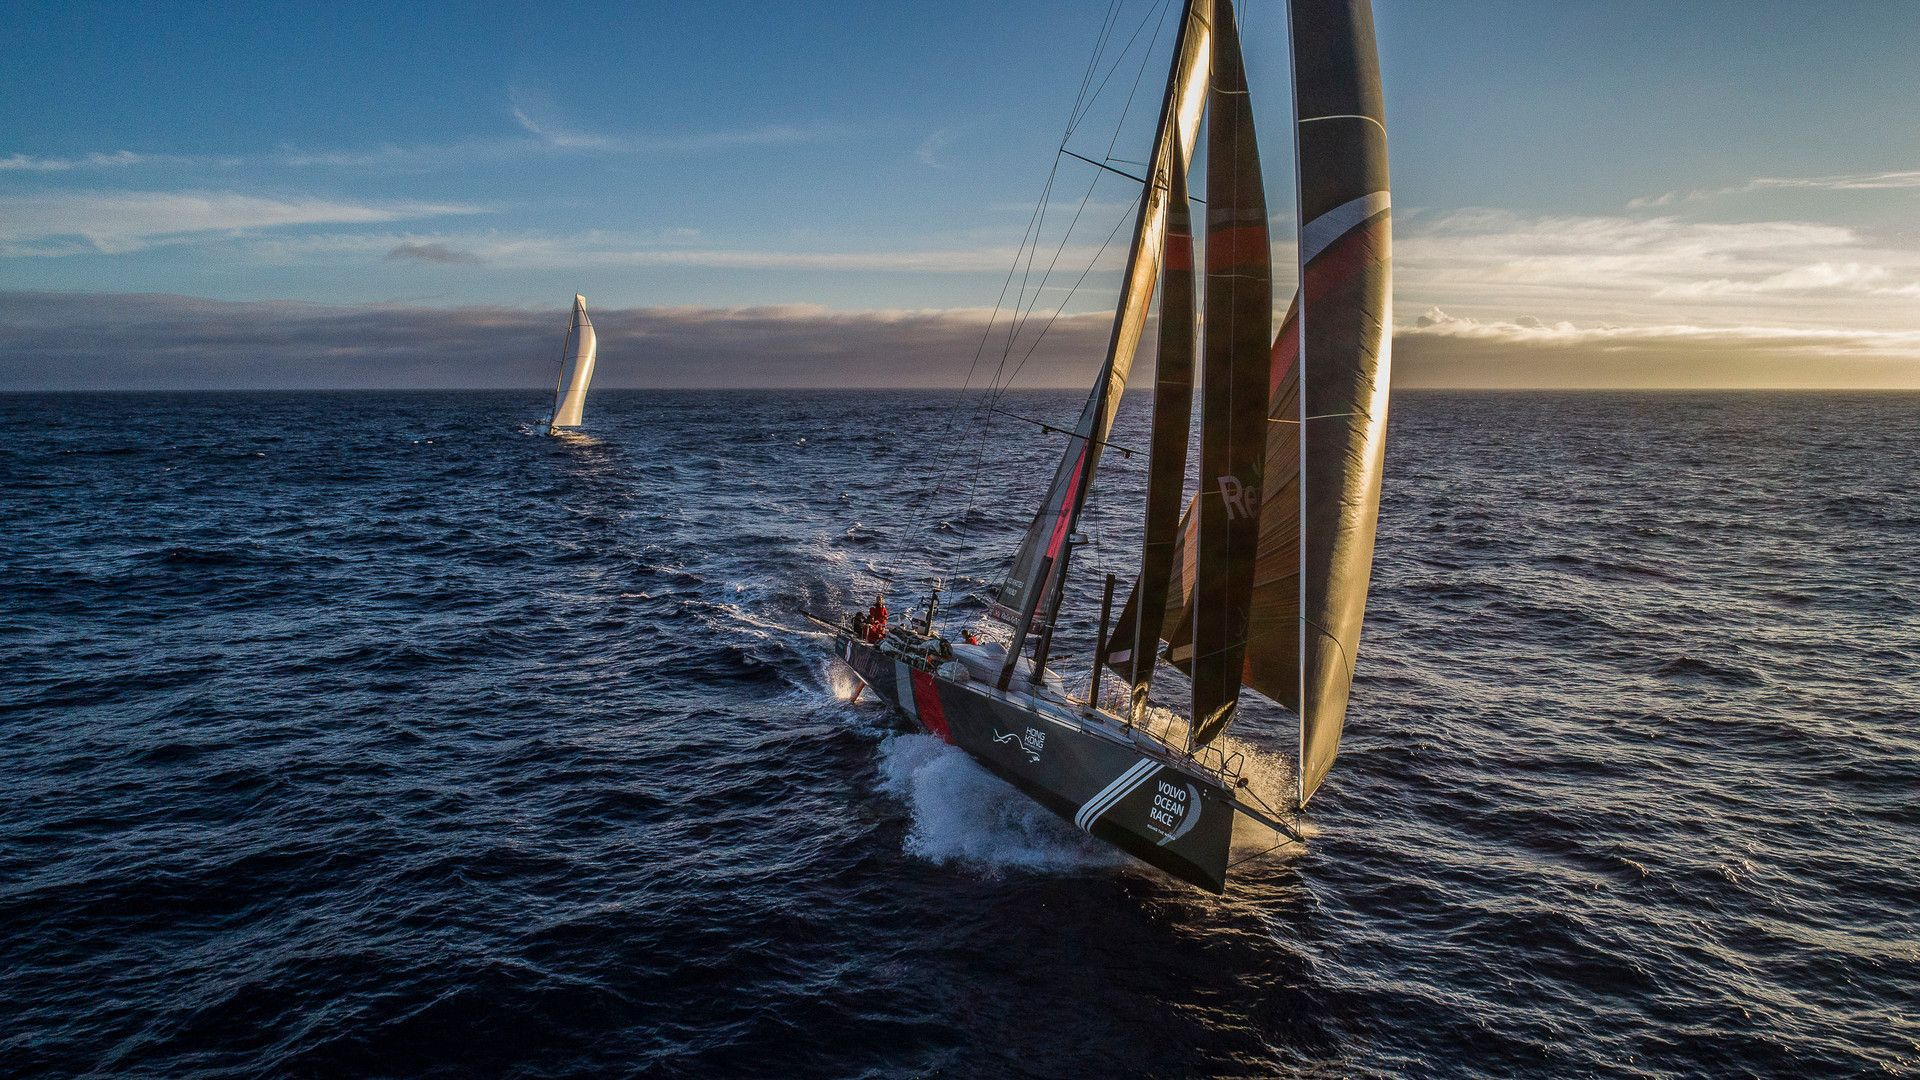 The Volvo Ocean Race Is Coming To Hong Kong: Here's What To Expect